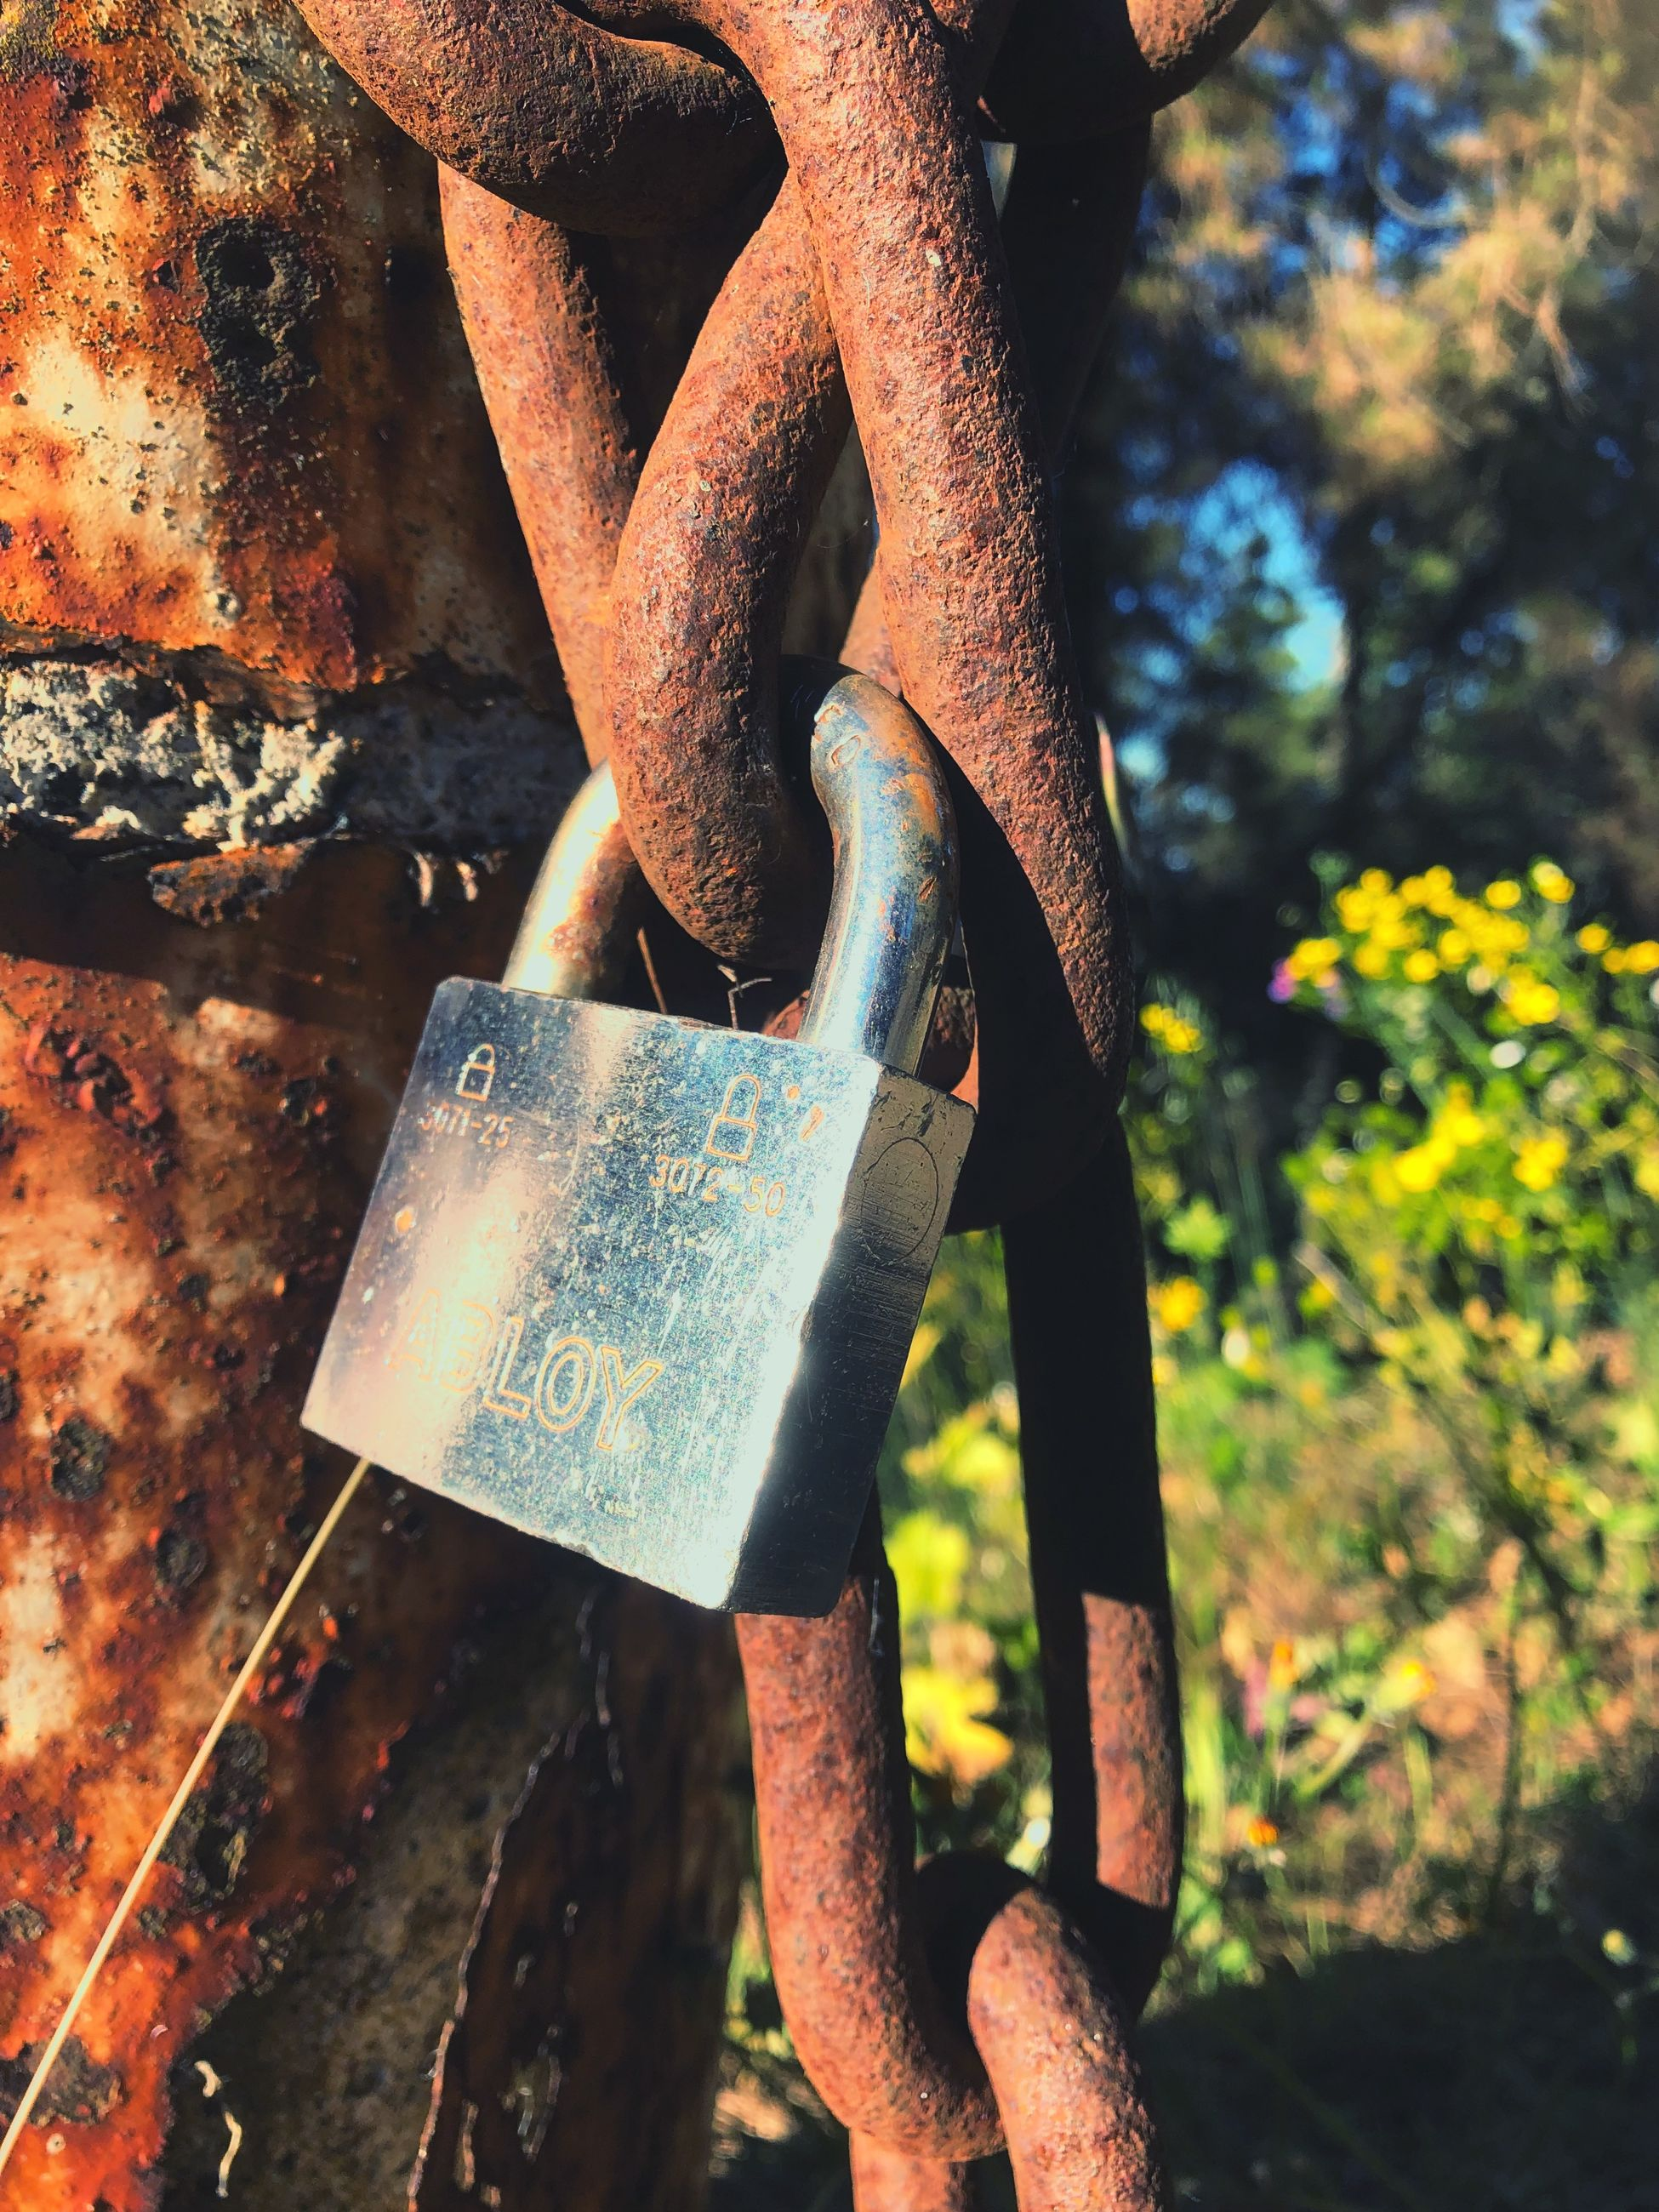 metal, rusty, day, hanging, protection, nature, focus on foreground, text, close-up, security, emotion, outdoors, no people, safety, positive emotion, padlock, lock, love, tree, communication, message